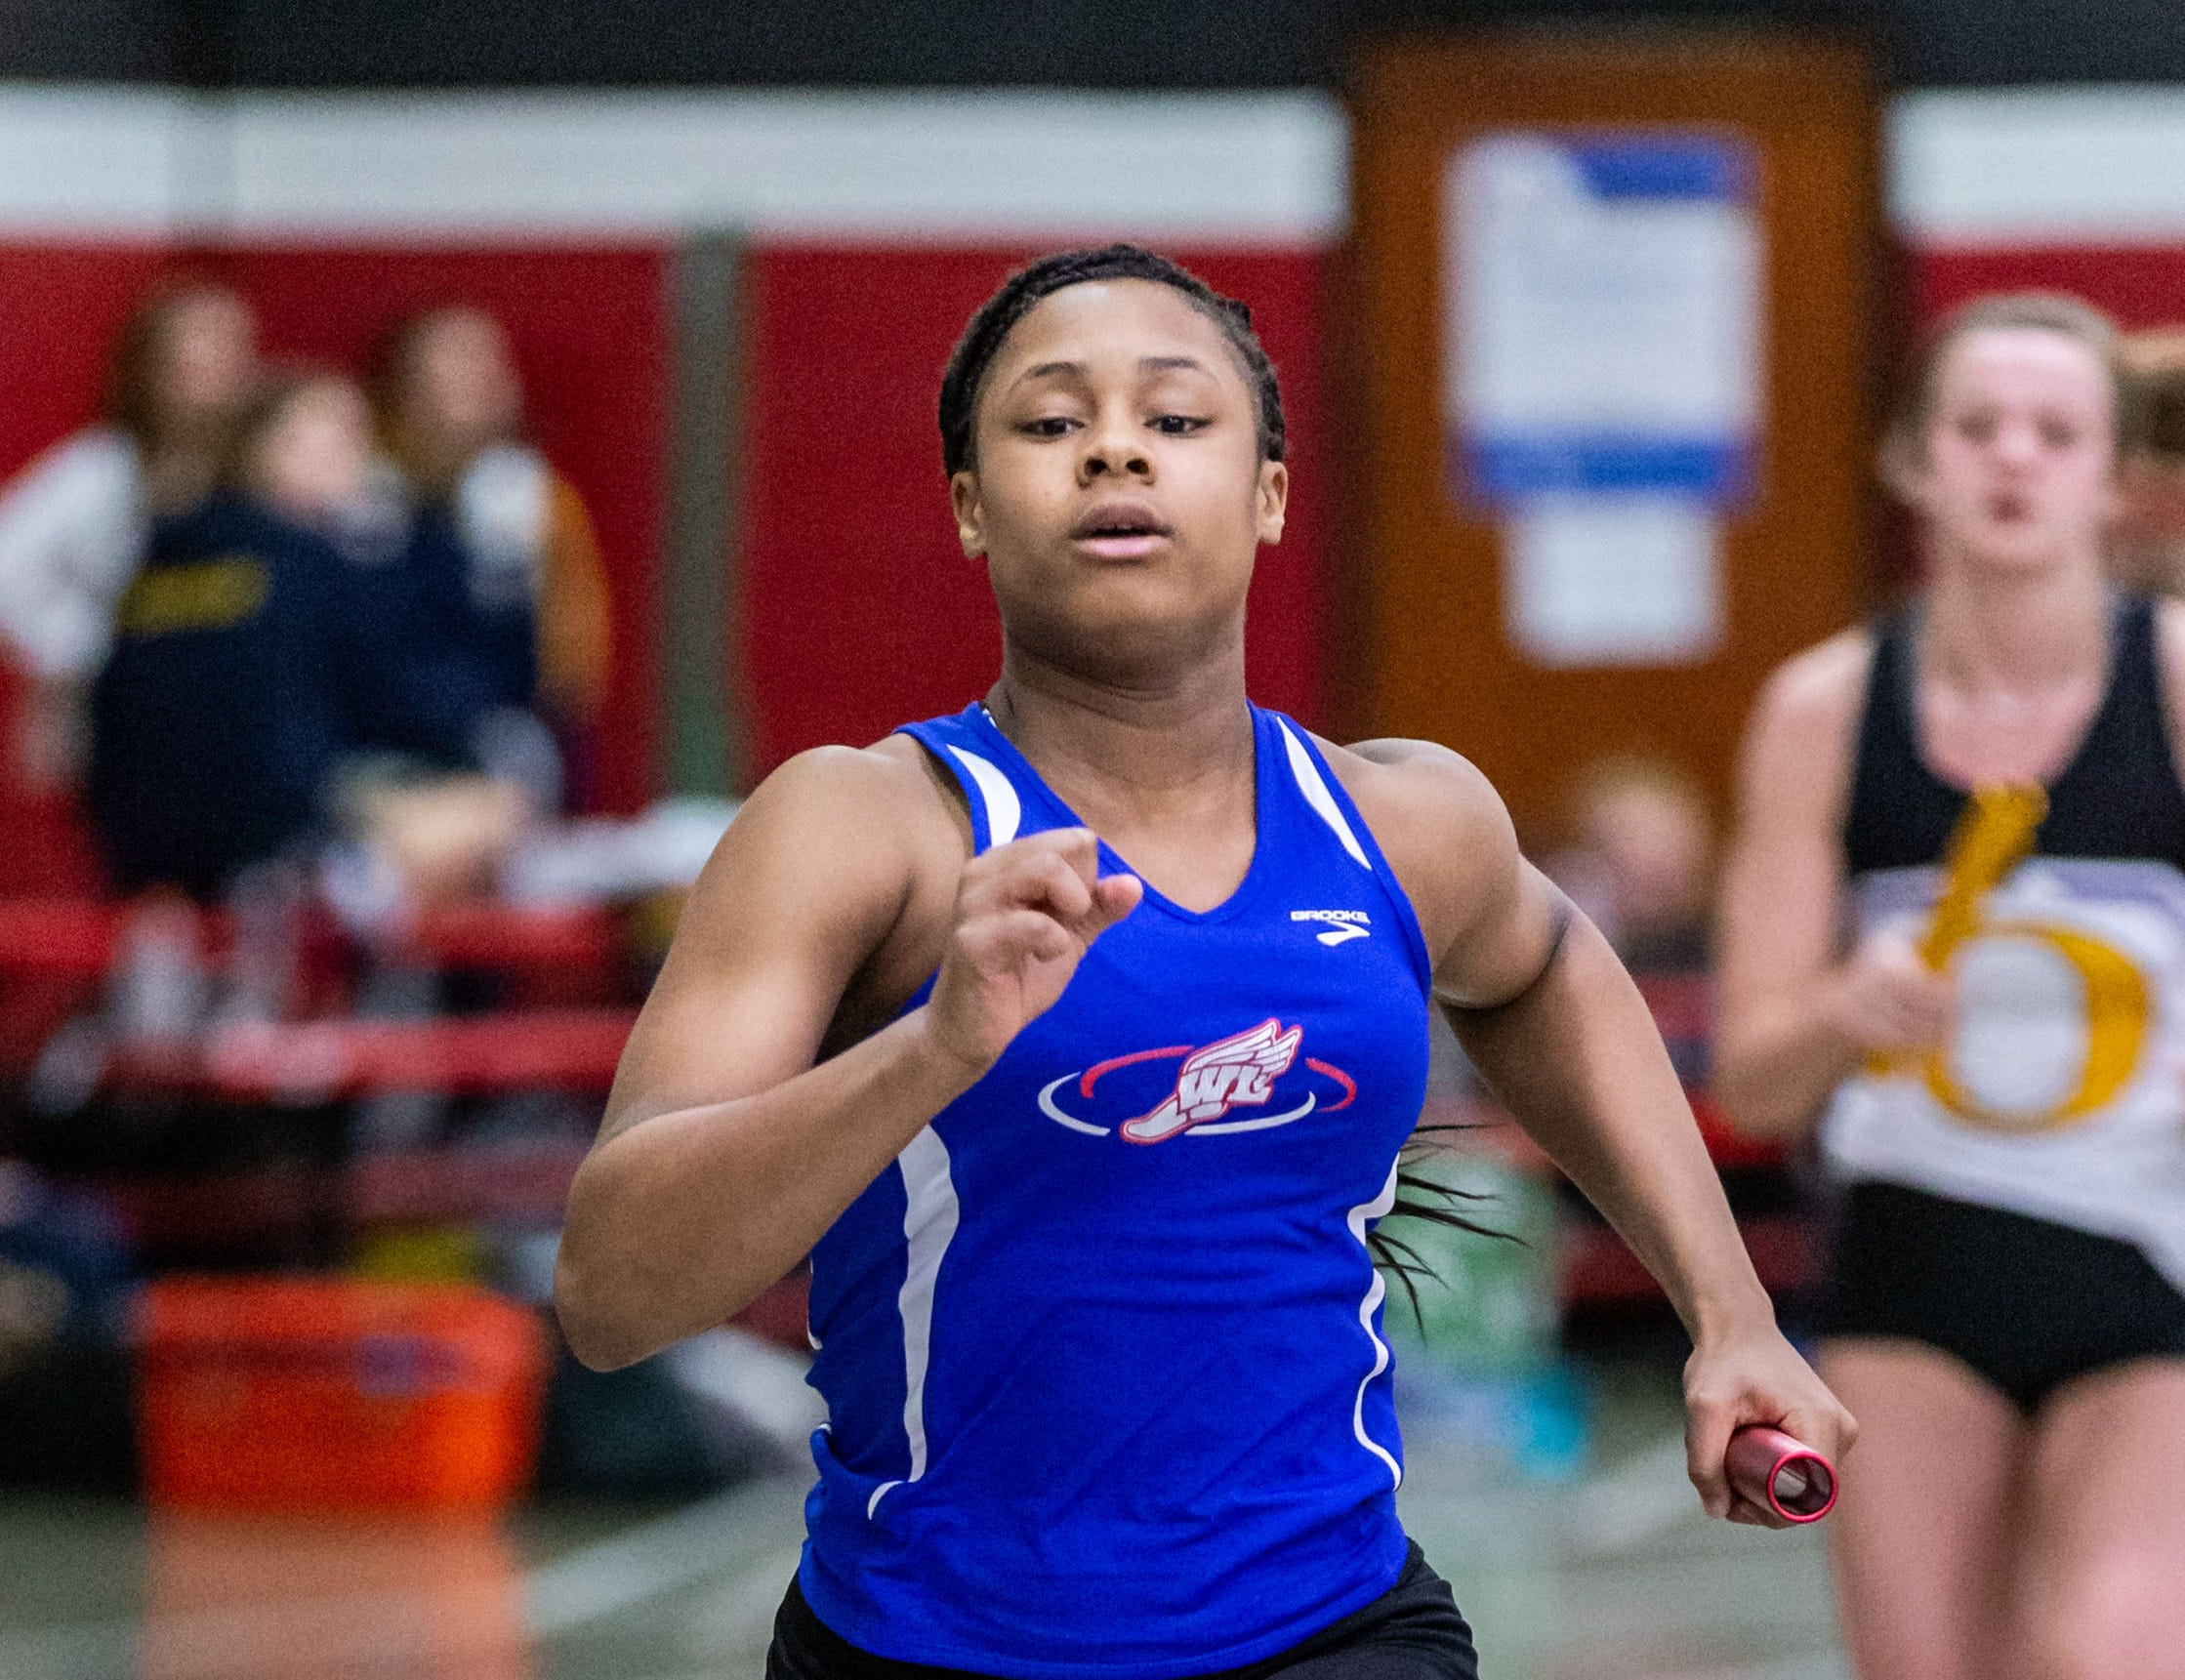 Wisconsin Lutheran's Deanna Campbell competes in the 4x440 yard relay at the Peter Rempe Cardinal Relays hosted by Waukesha South on Thursday, March 21, 2019.